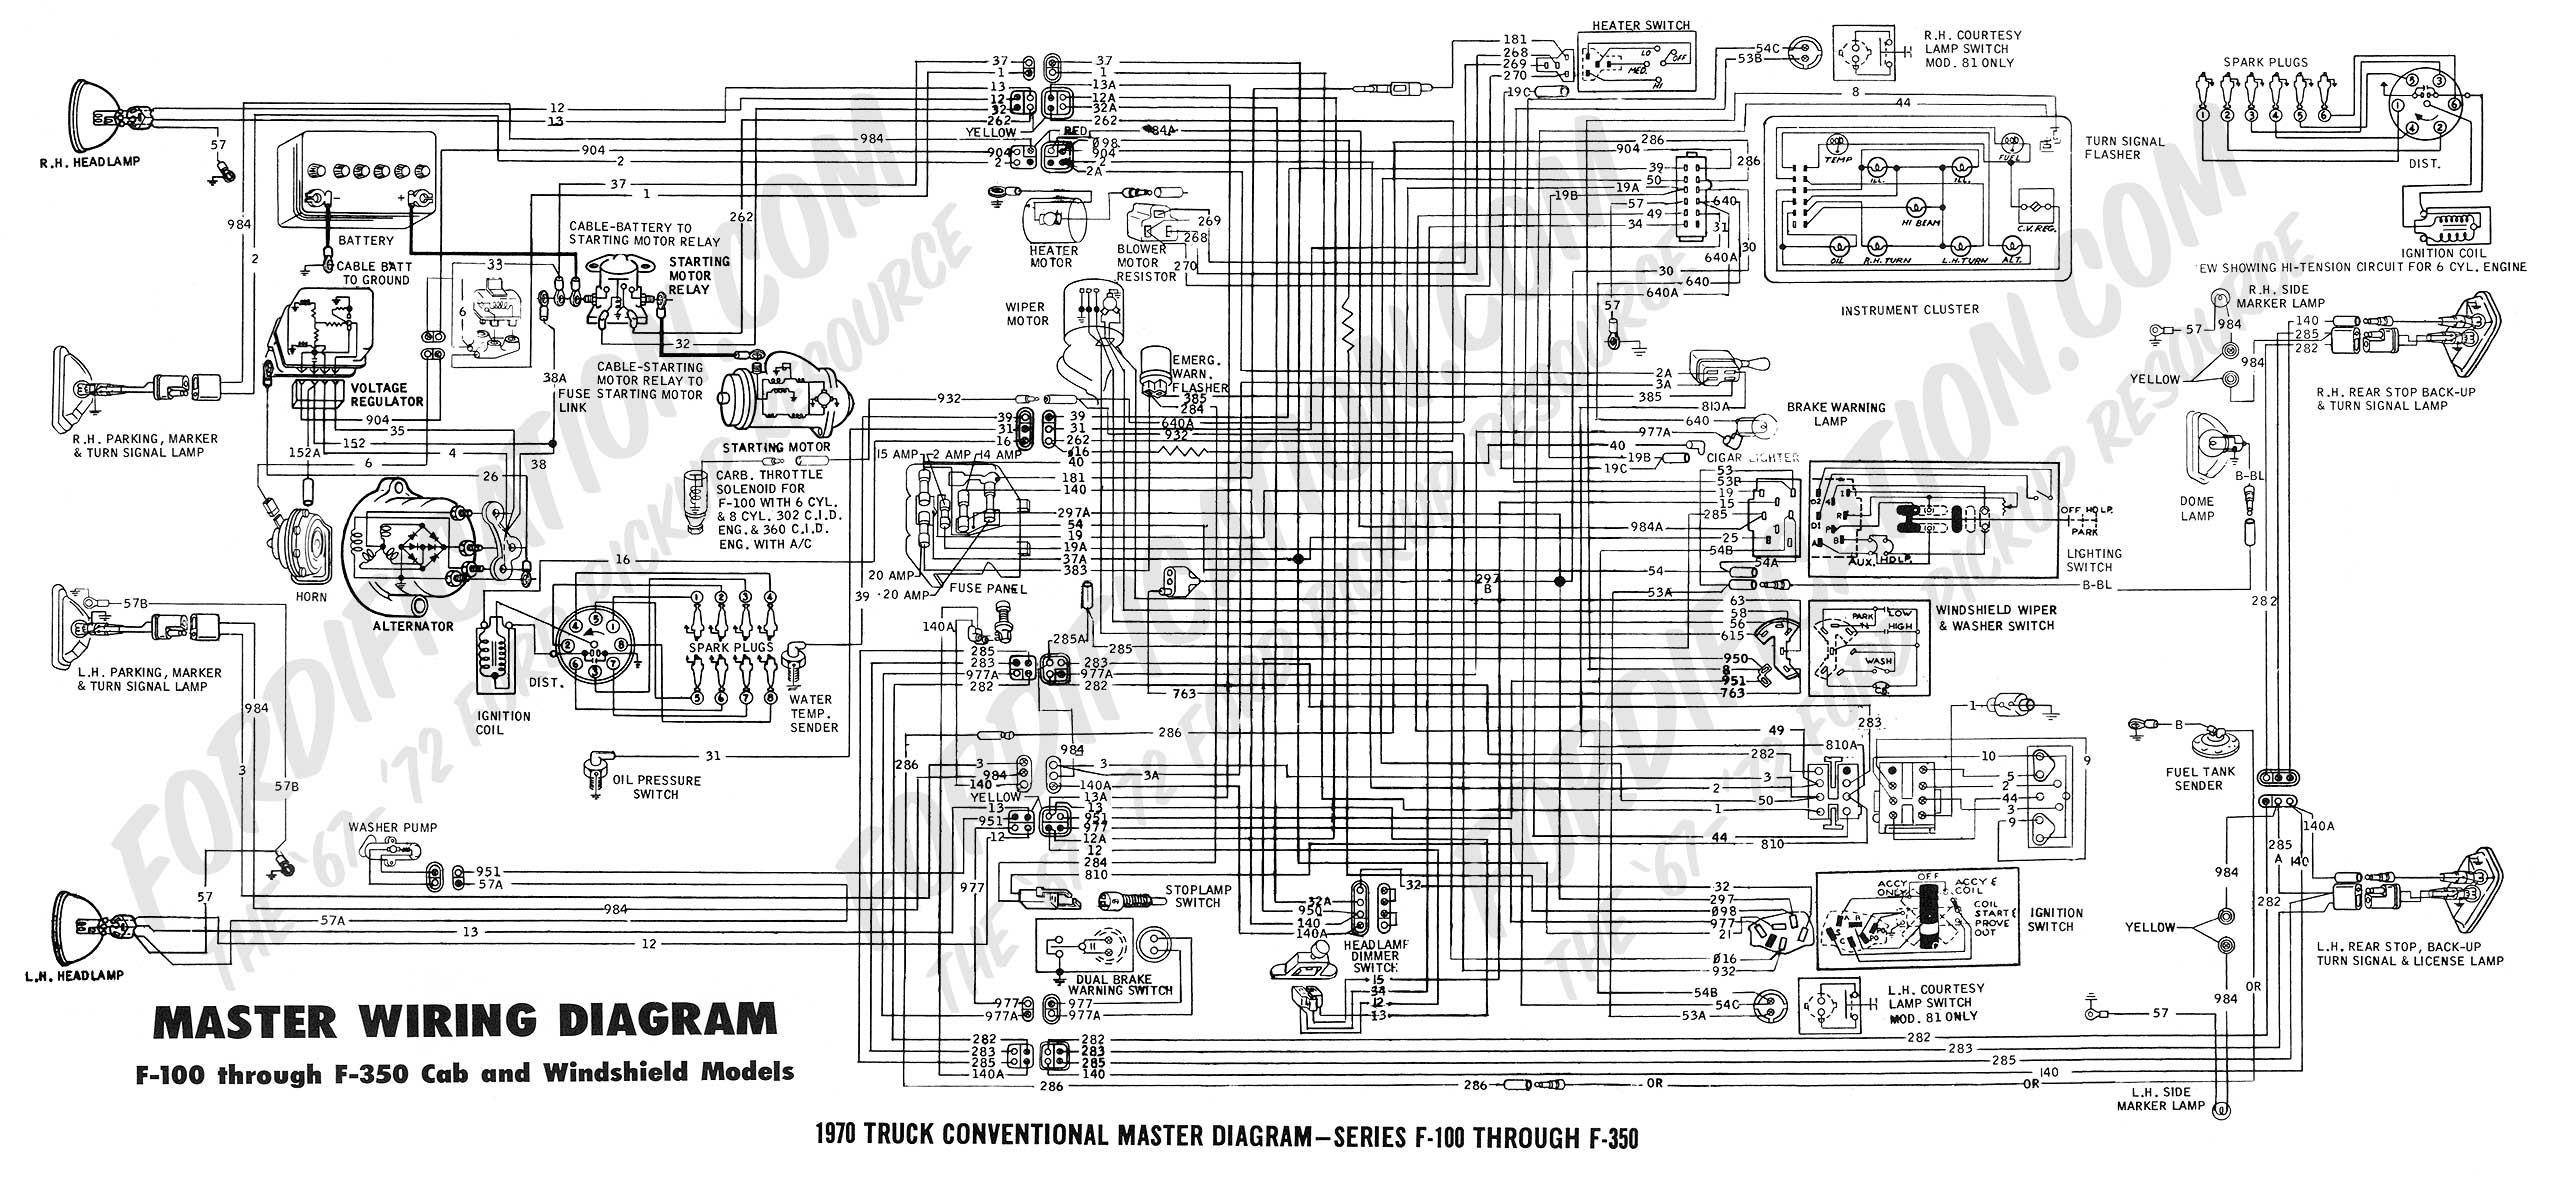 wiring diagram 70_master 1990 ford tempo wiring diagram wiring diagram simonand 1990 mustang wiring diagram at mifinder.co